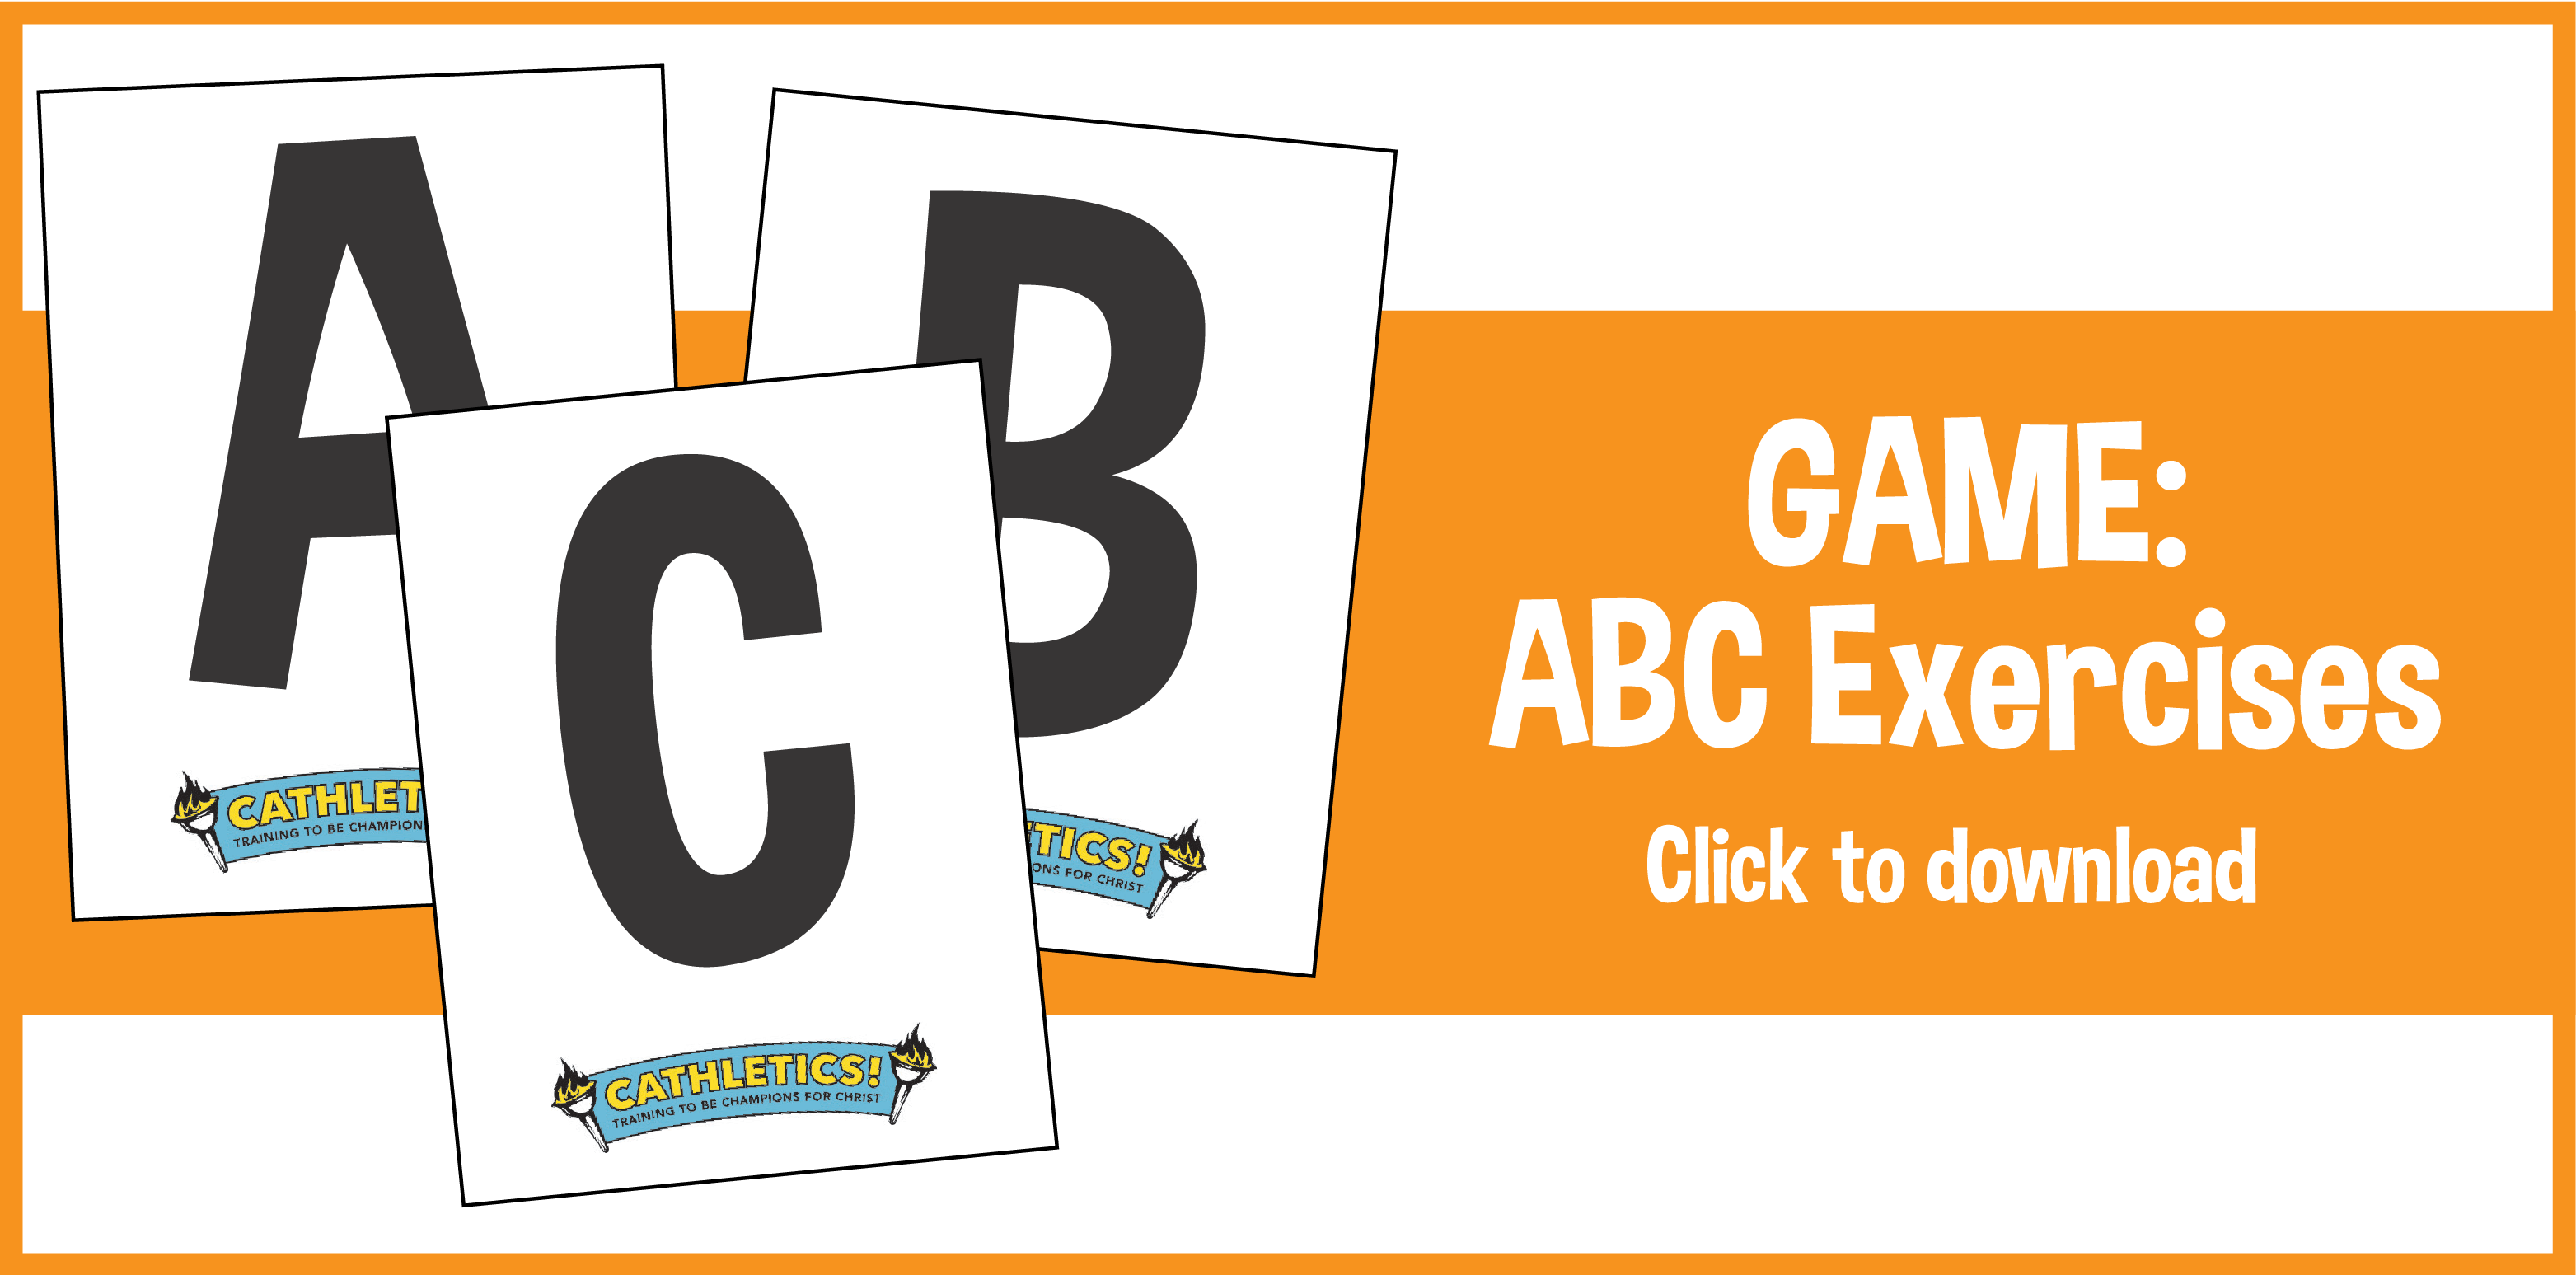 ABC game button